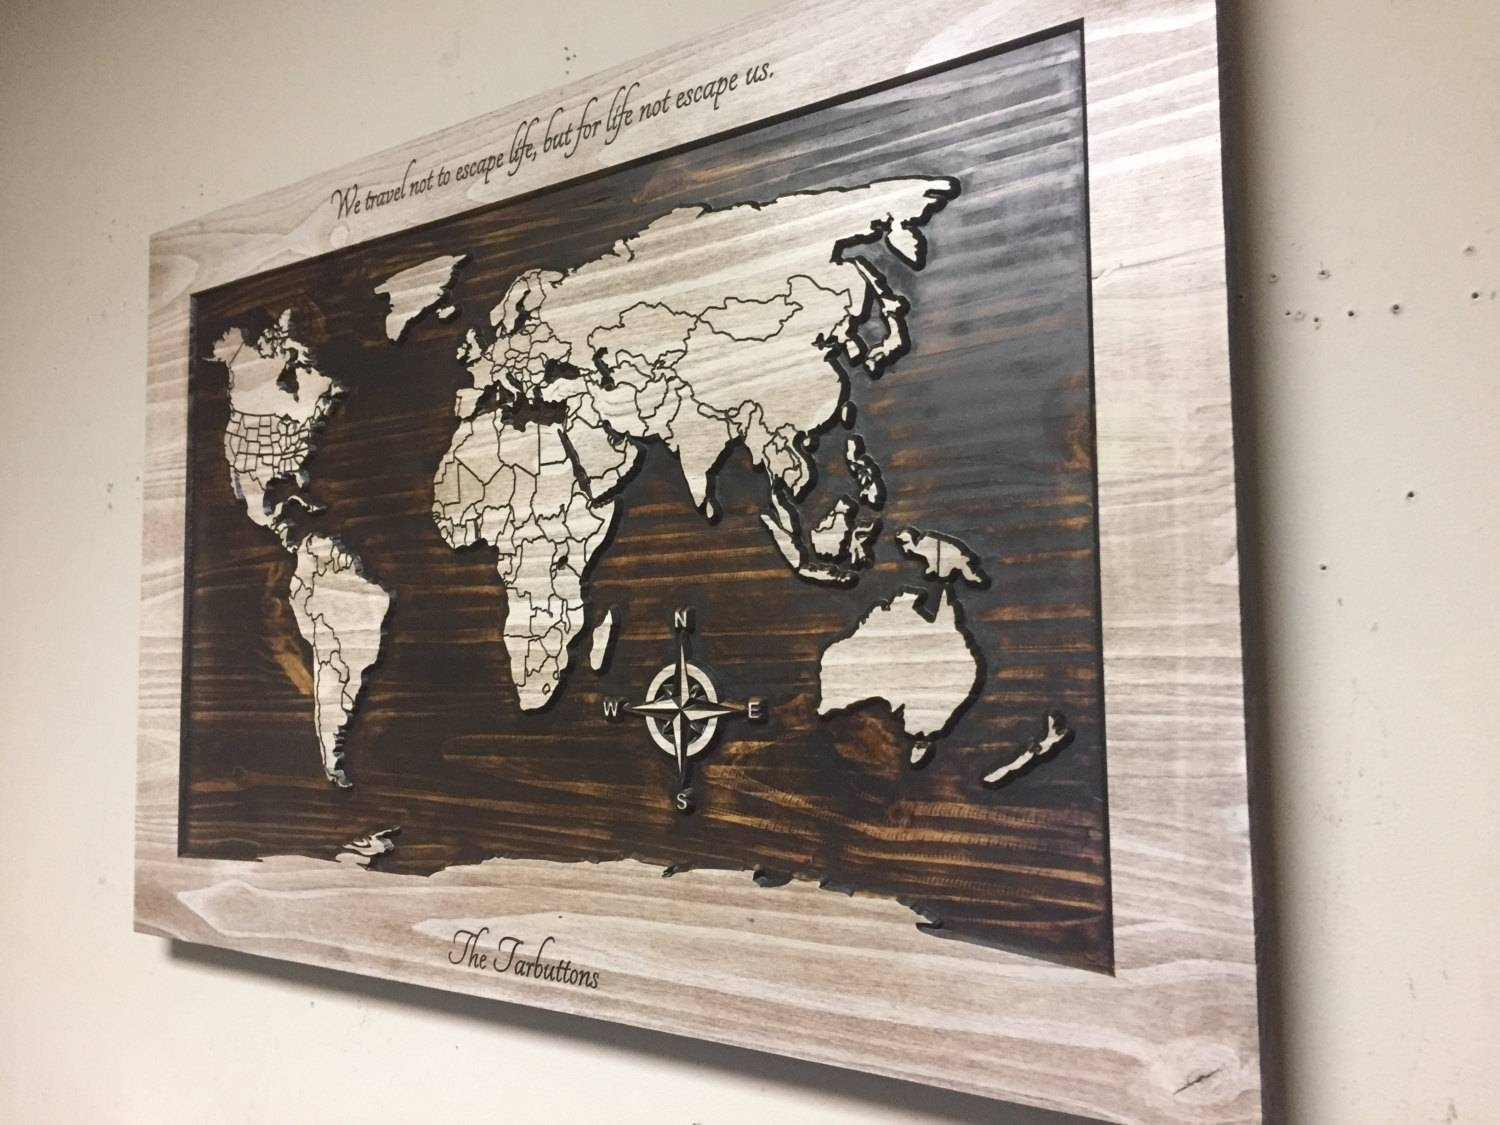 Wood Wall Art World Map Wall Art Carved Wooden World Map Intended For 2018 Us Map Wall Art (View 19 of 20)